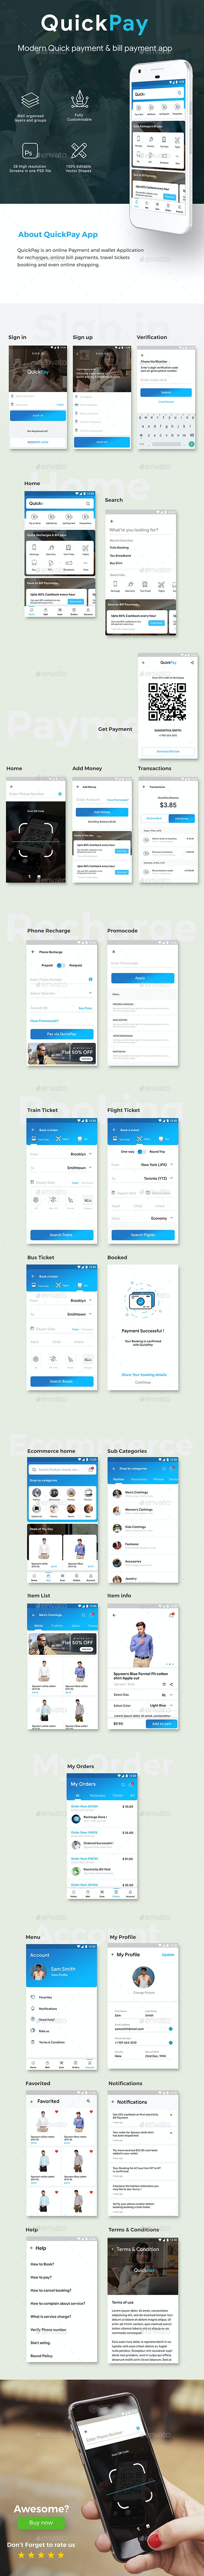 Online Payment, Recharge, Booking & Bill Payment App UI Set | QuickPay - User Interfaces Web Elements